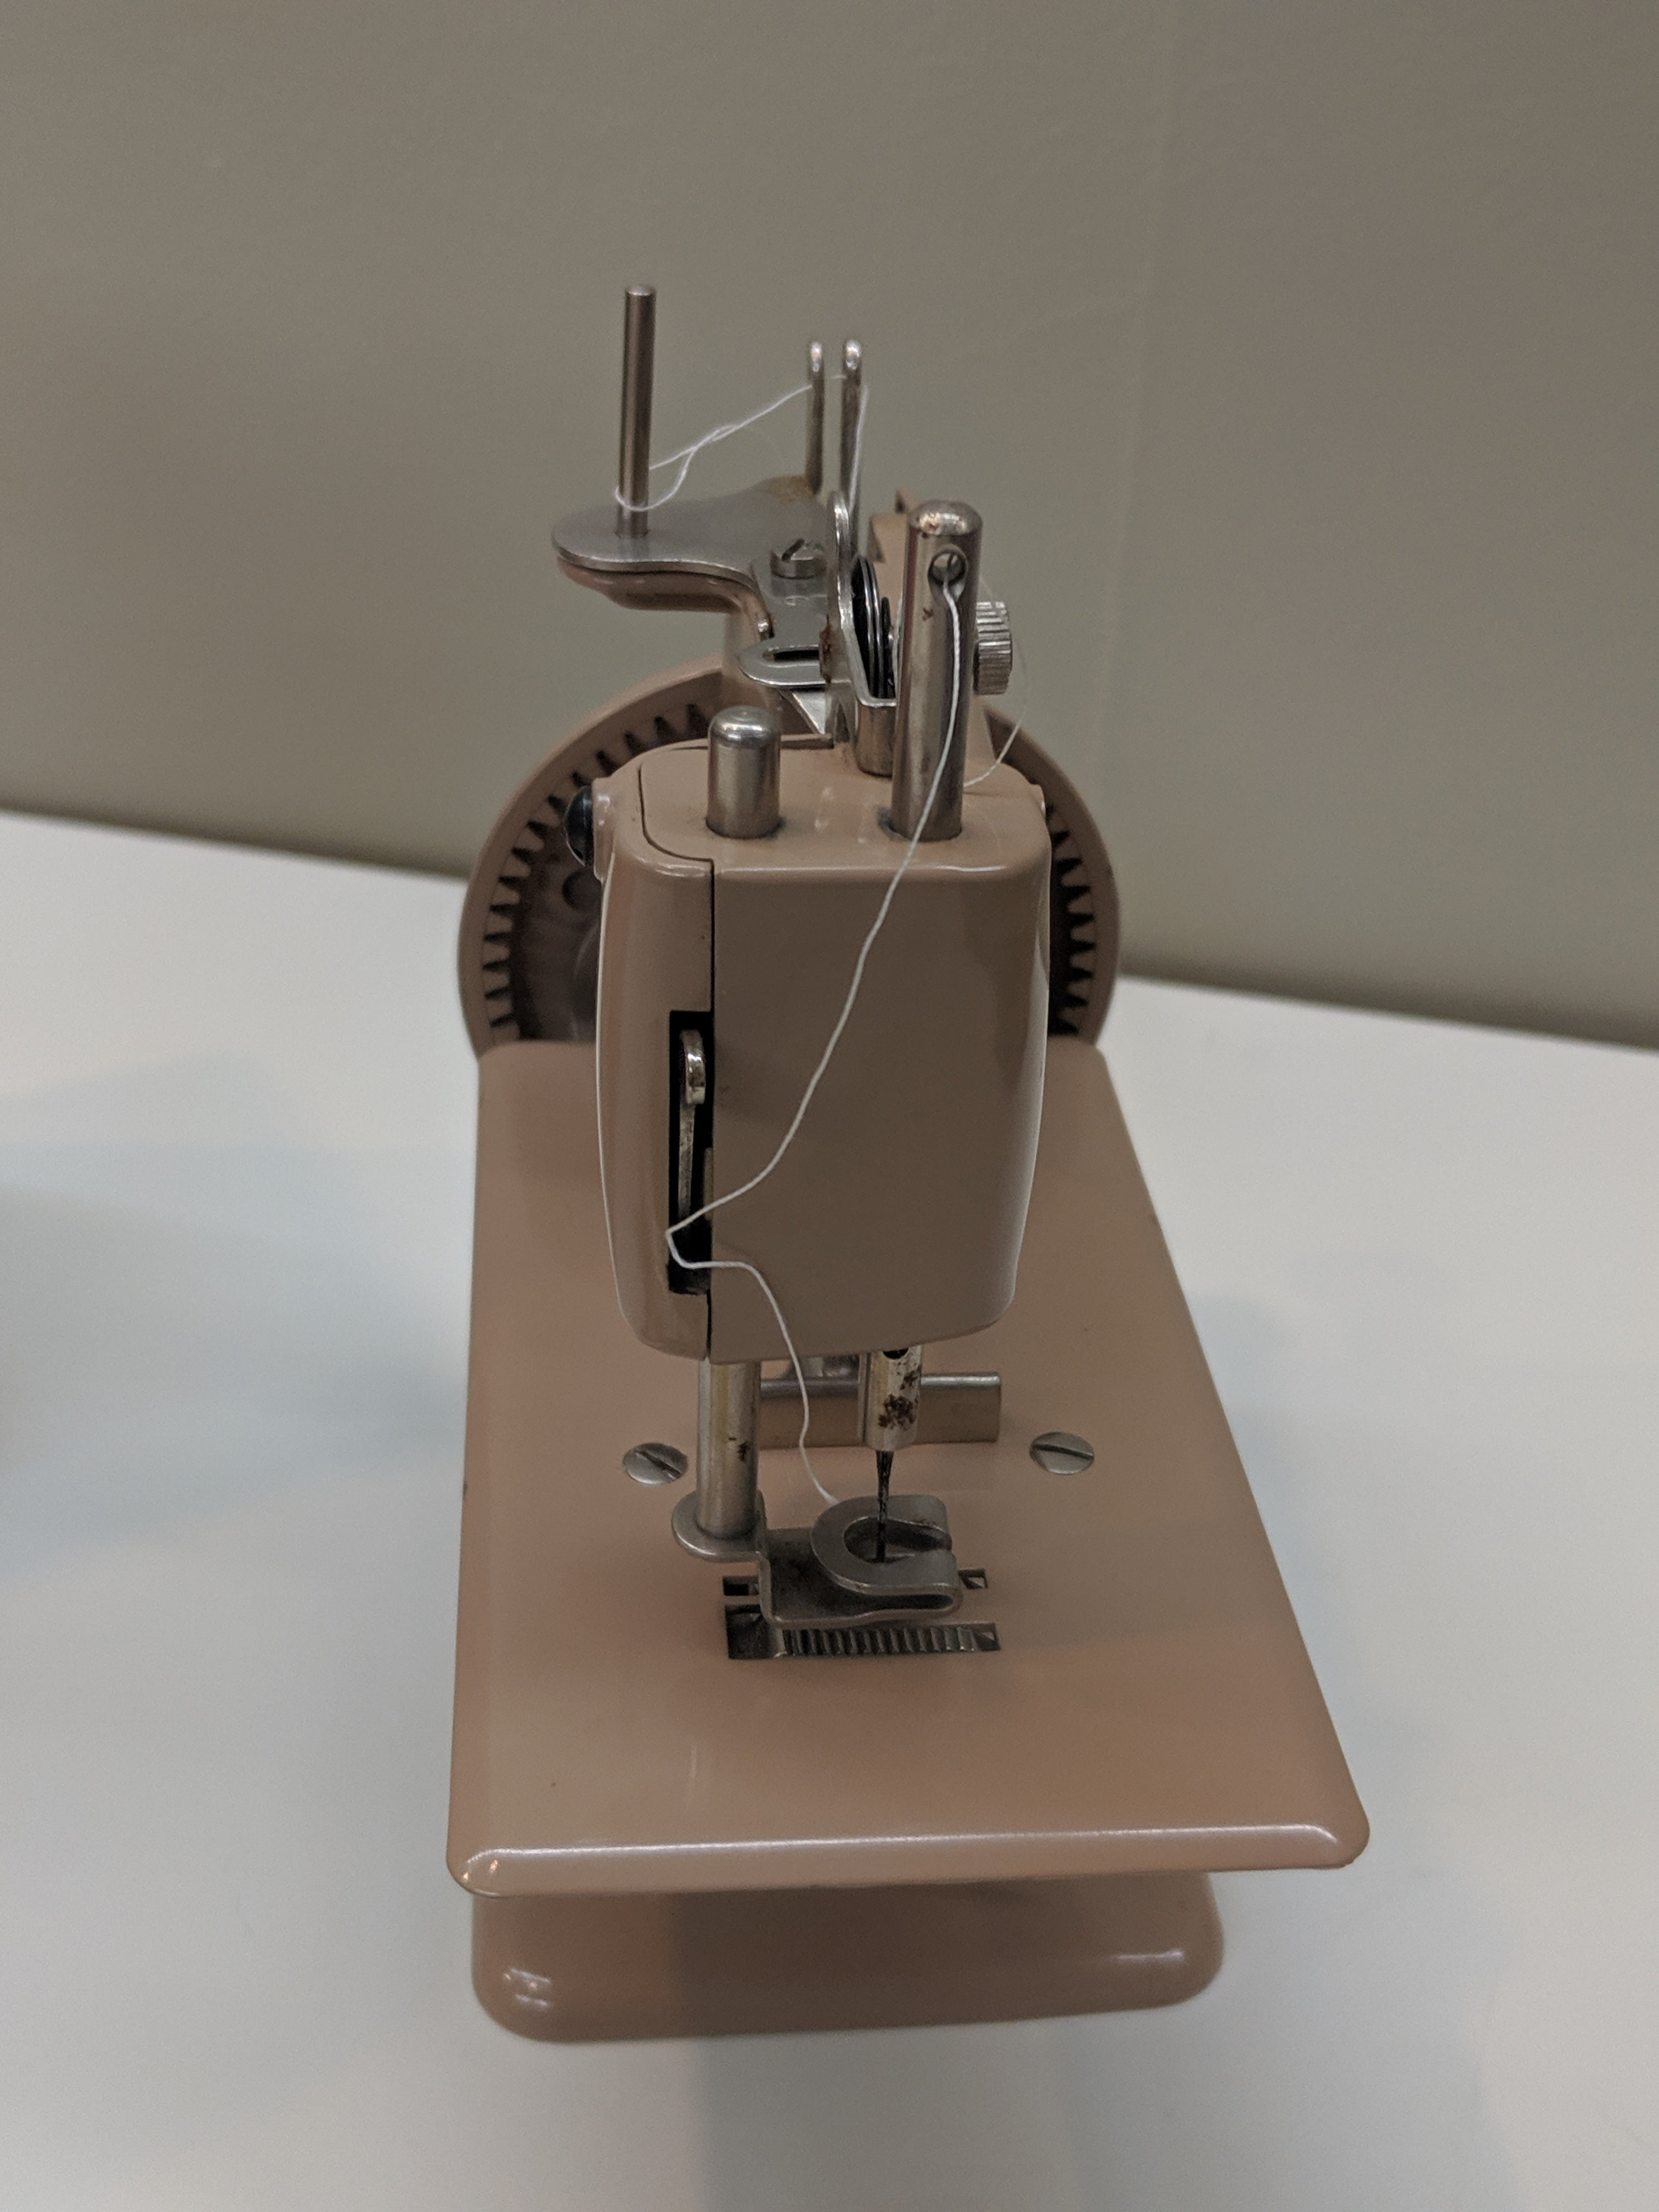 Beige Sing Sewhandy Model 20 Sewing Machine